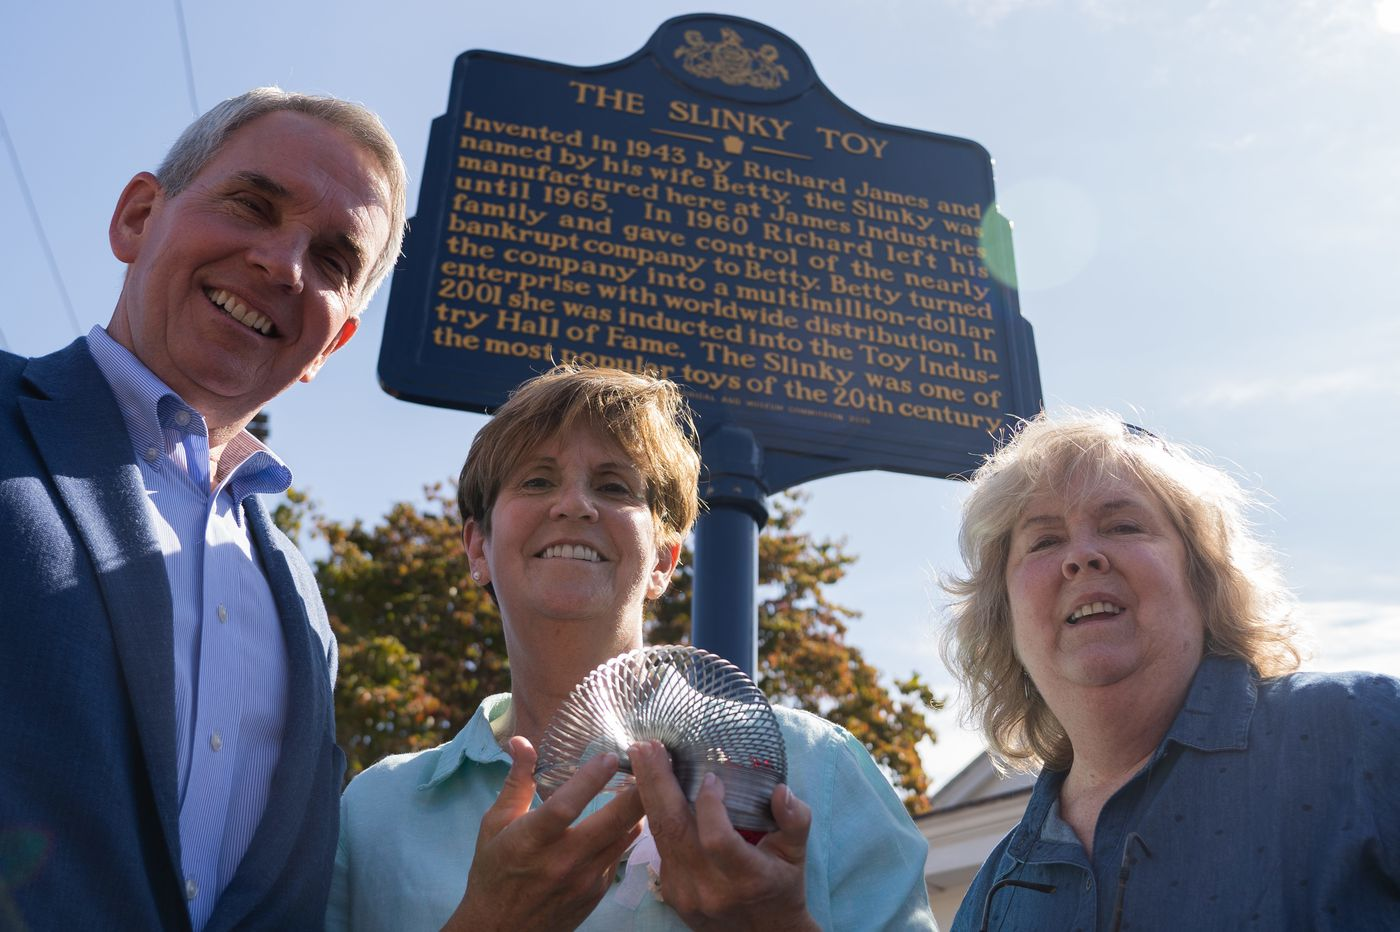 On National Slinky Day, the Delco-born toy gets its own historical marker